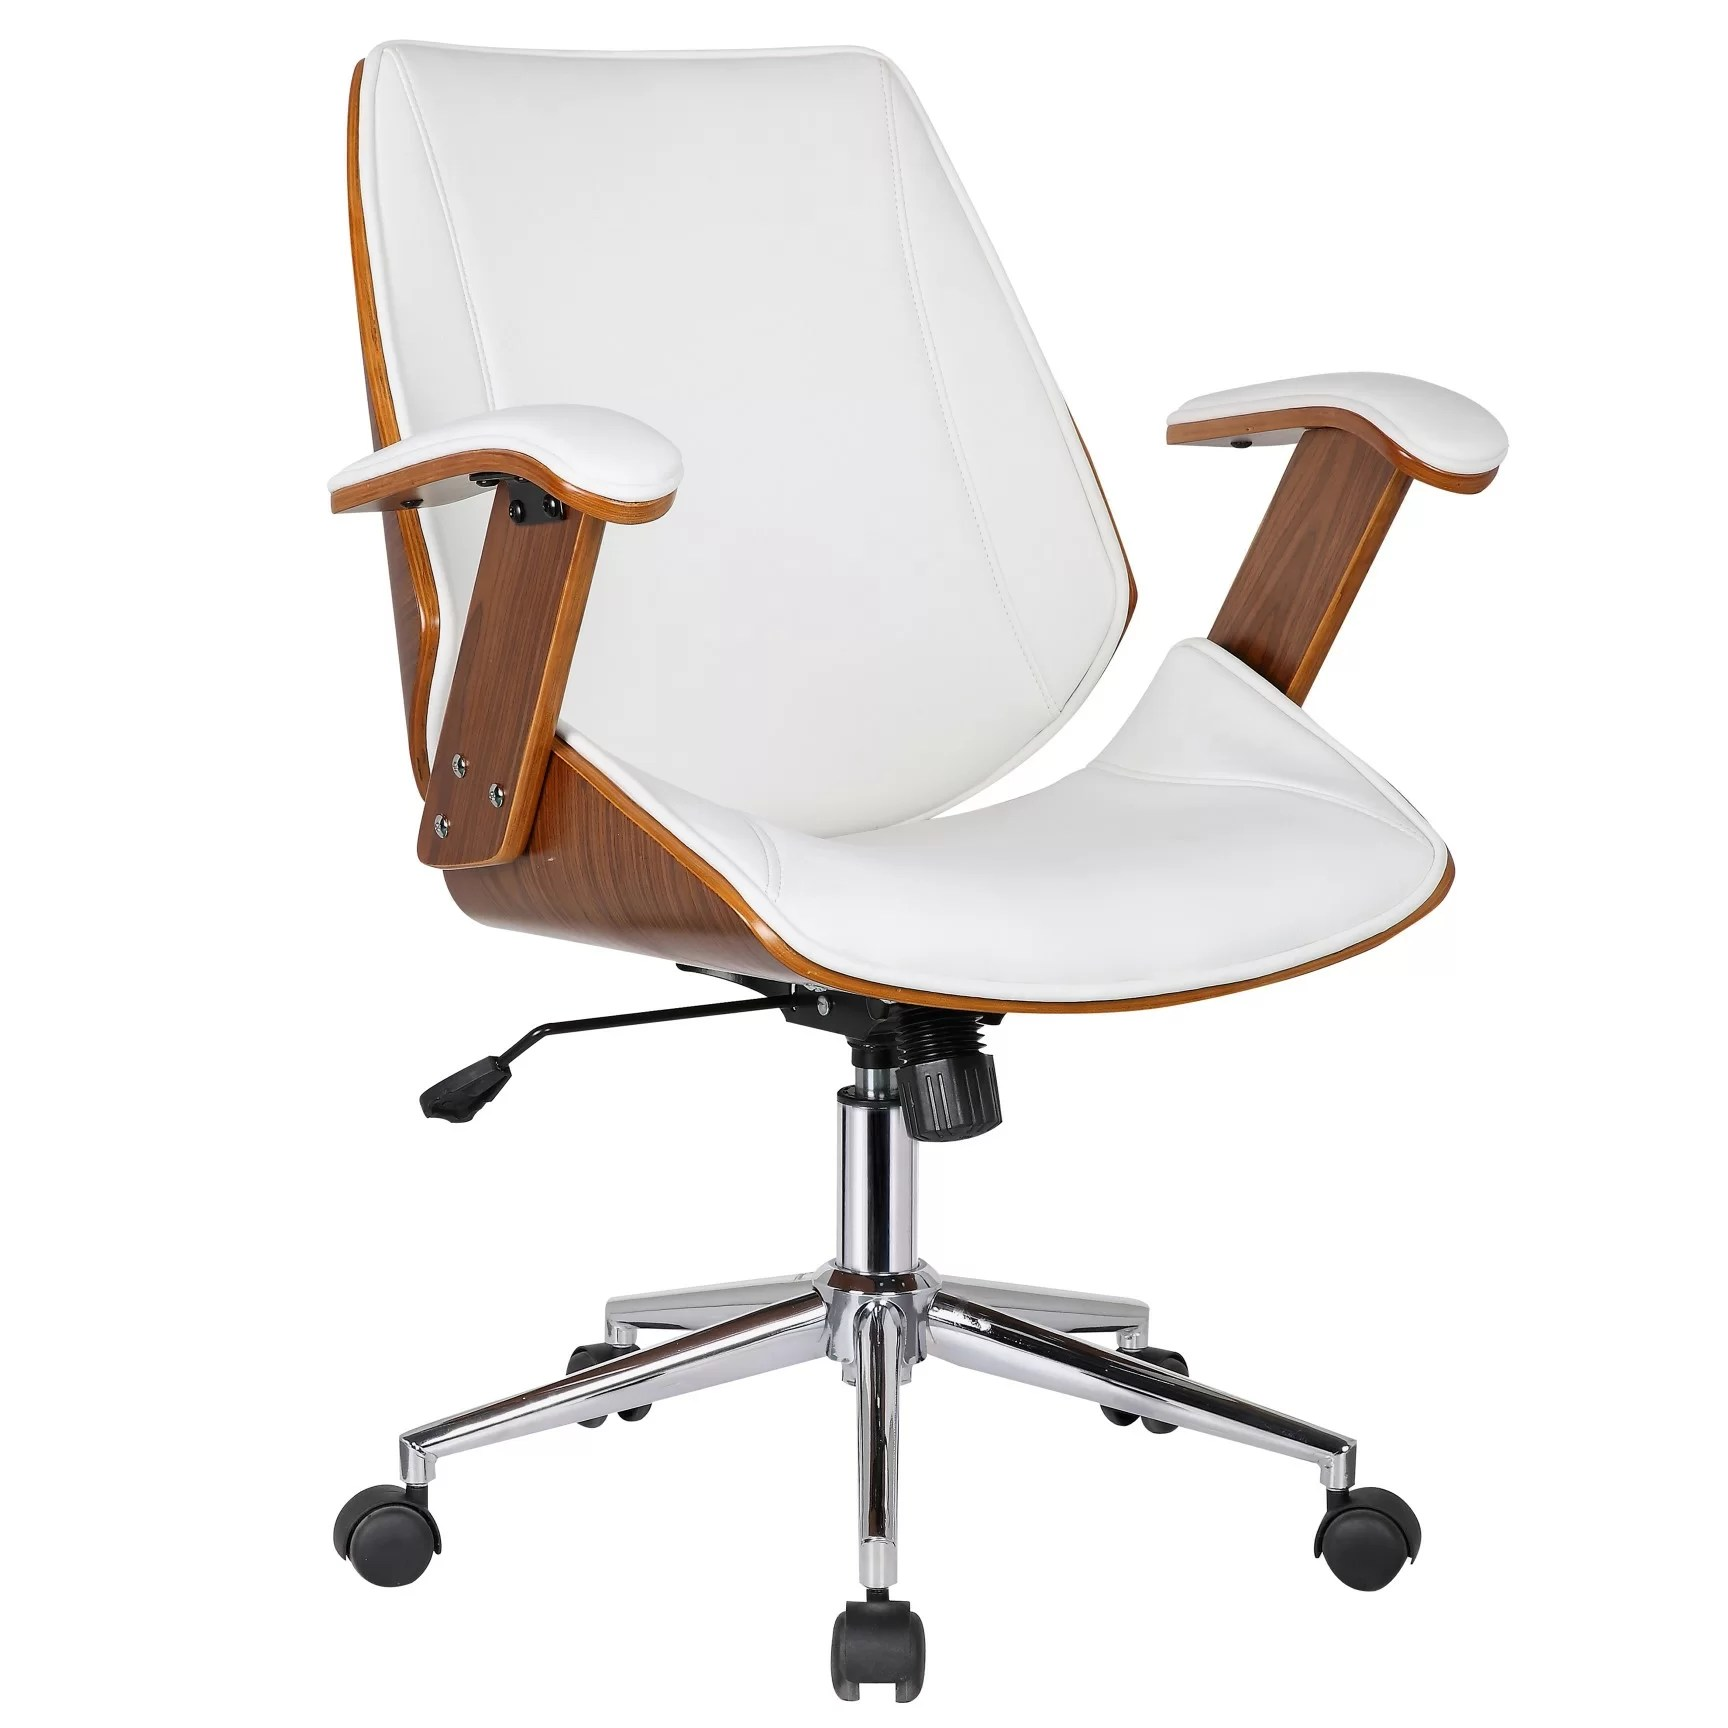 Office Chair With Arms Porthos Home Noah High Back Office Chair With Arms